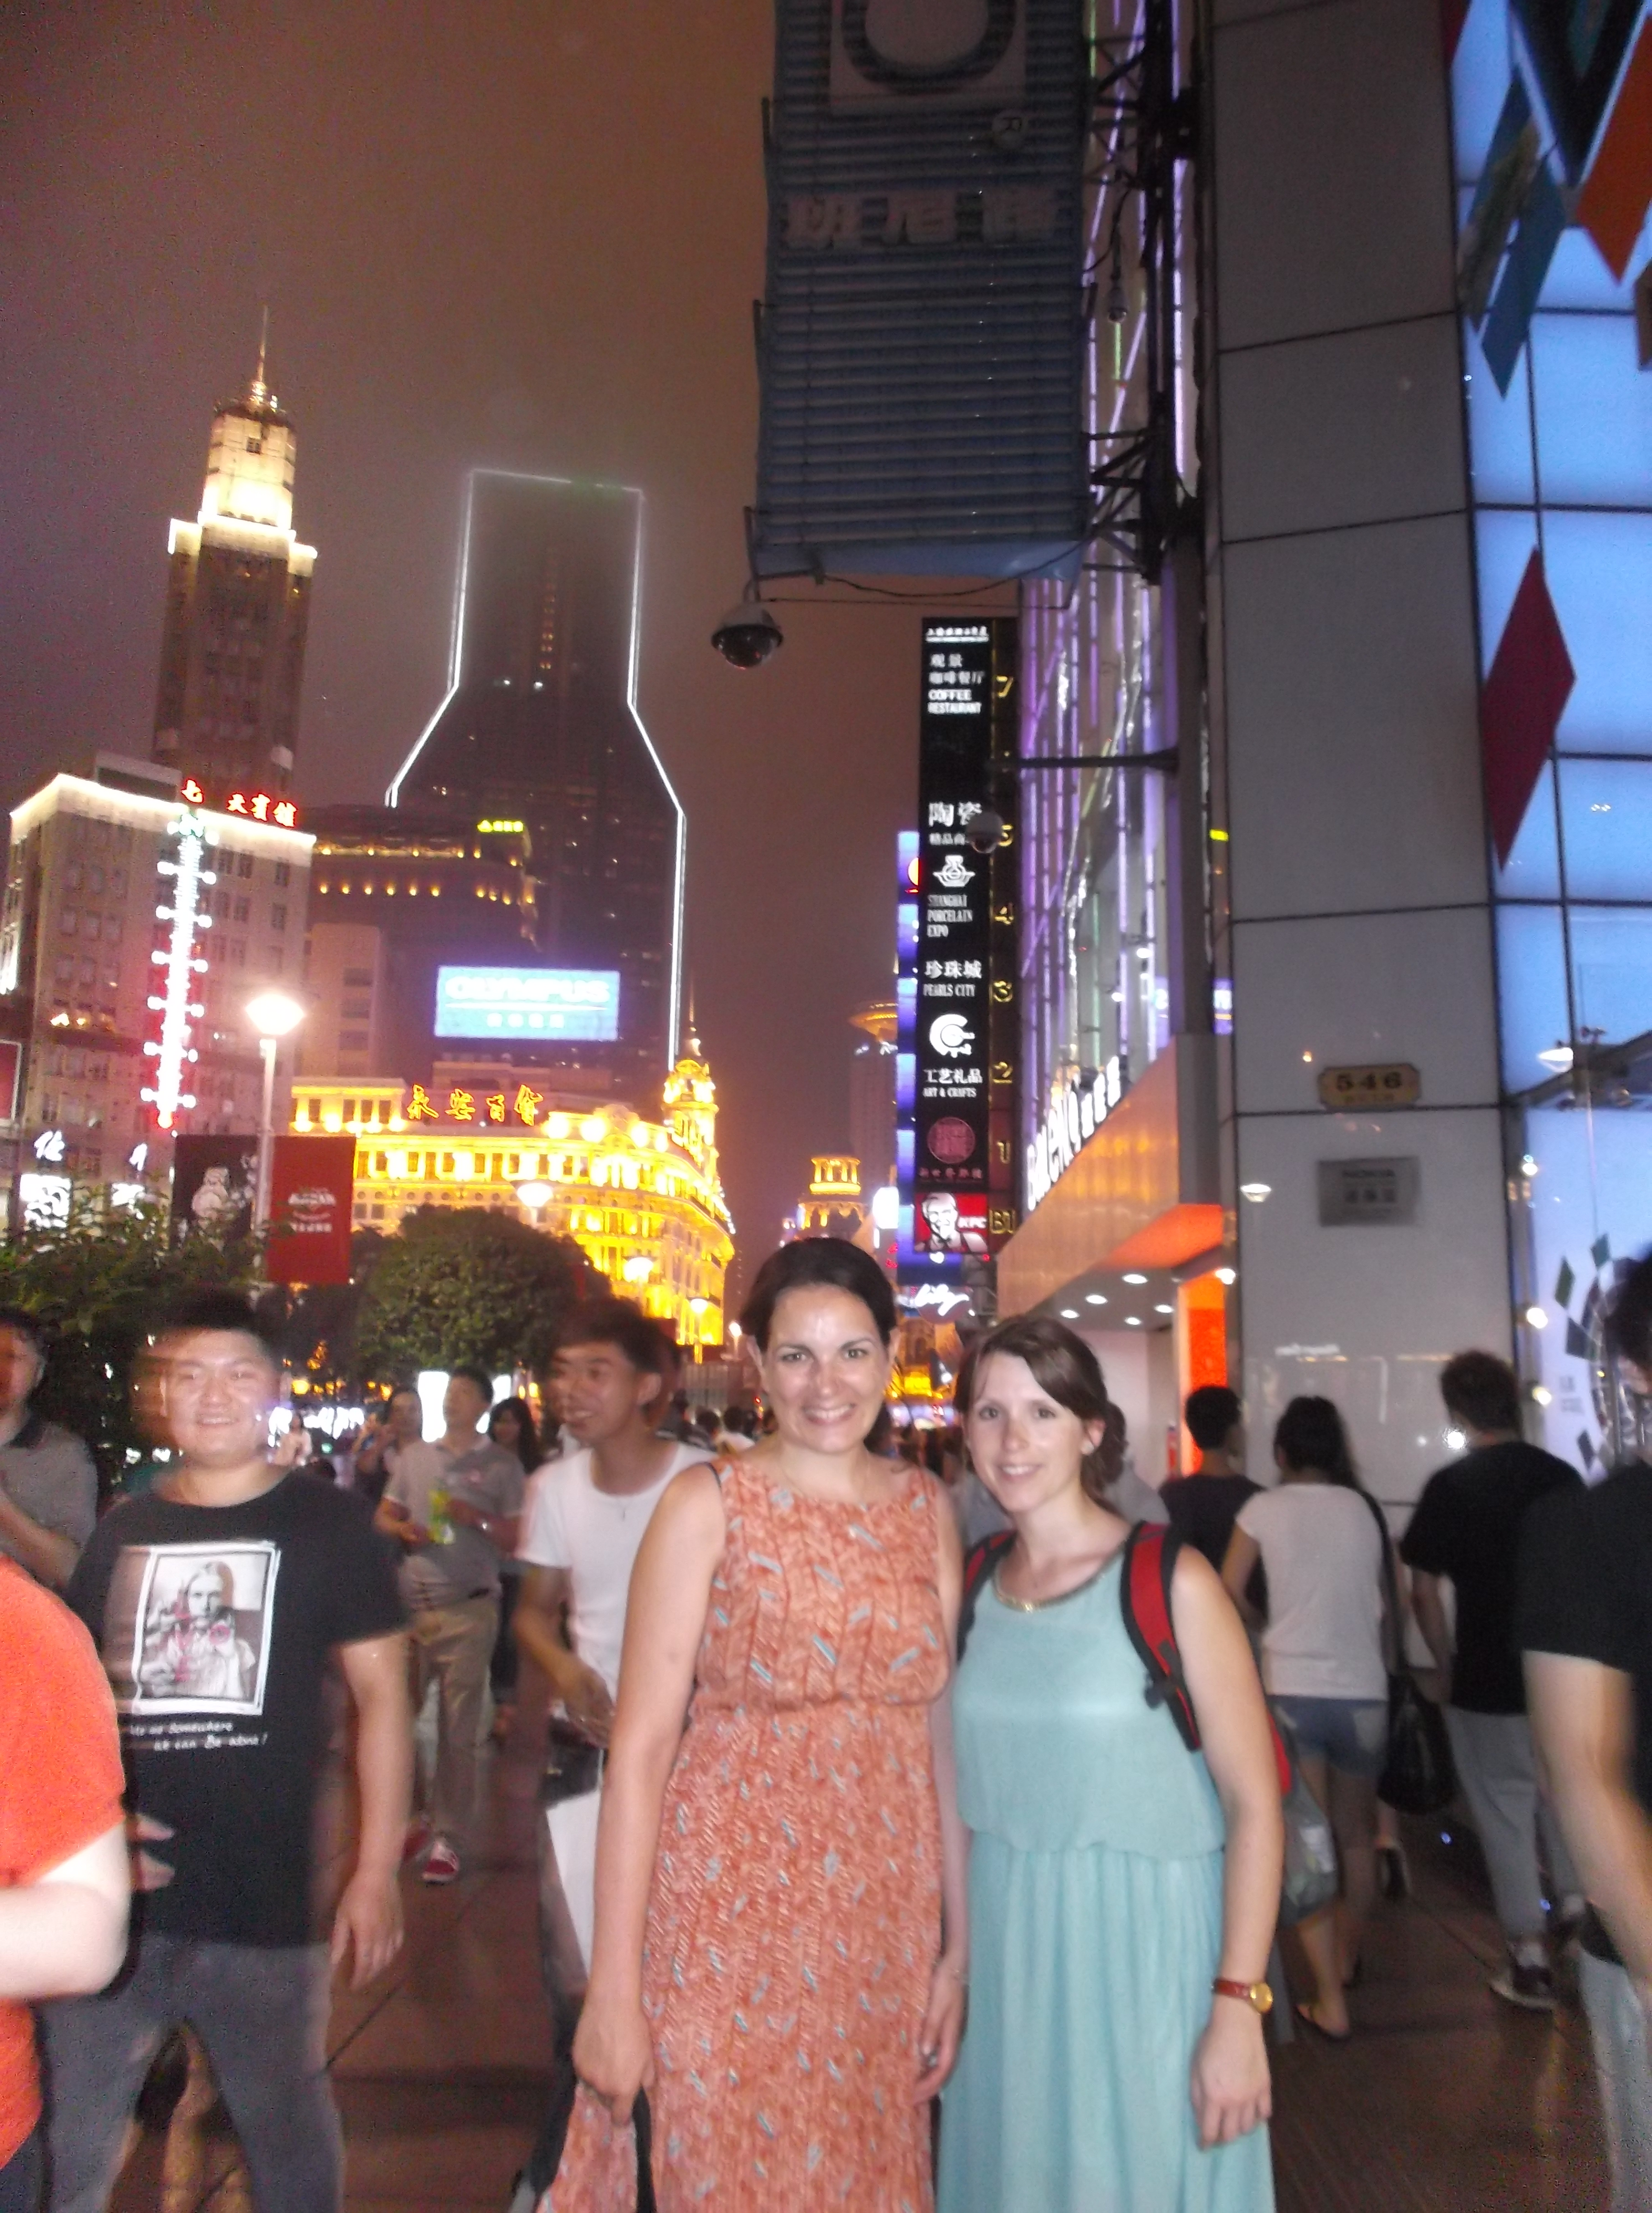 Living the high-life in Shanghai.